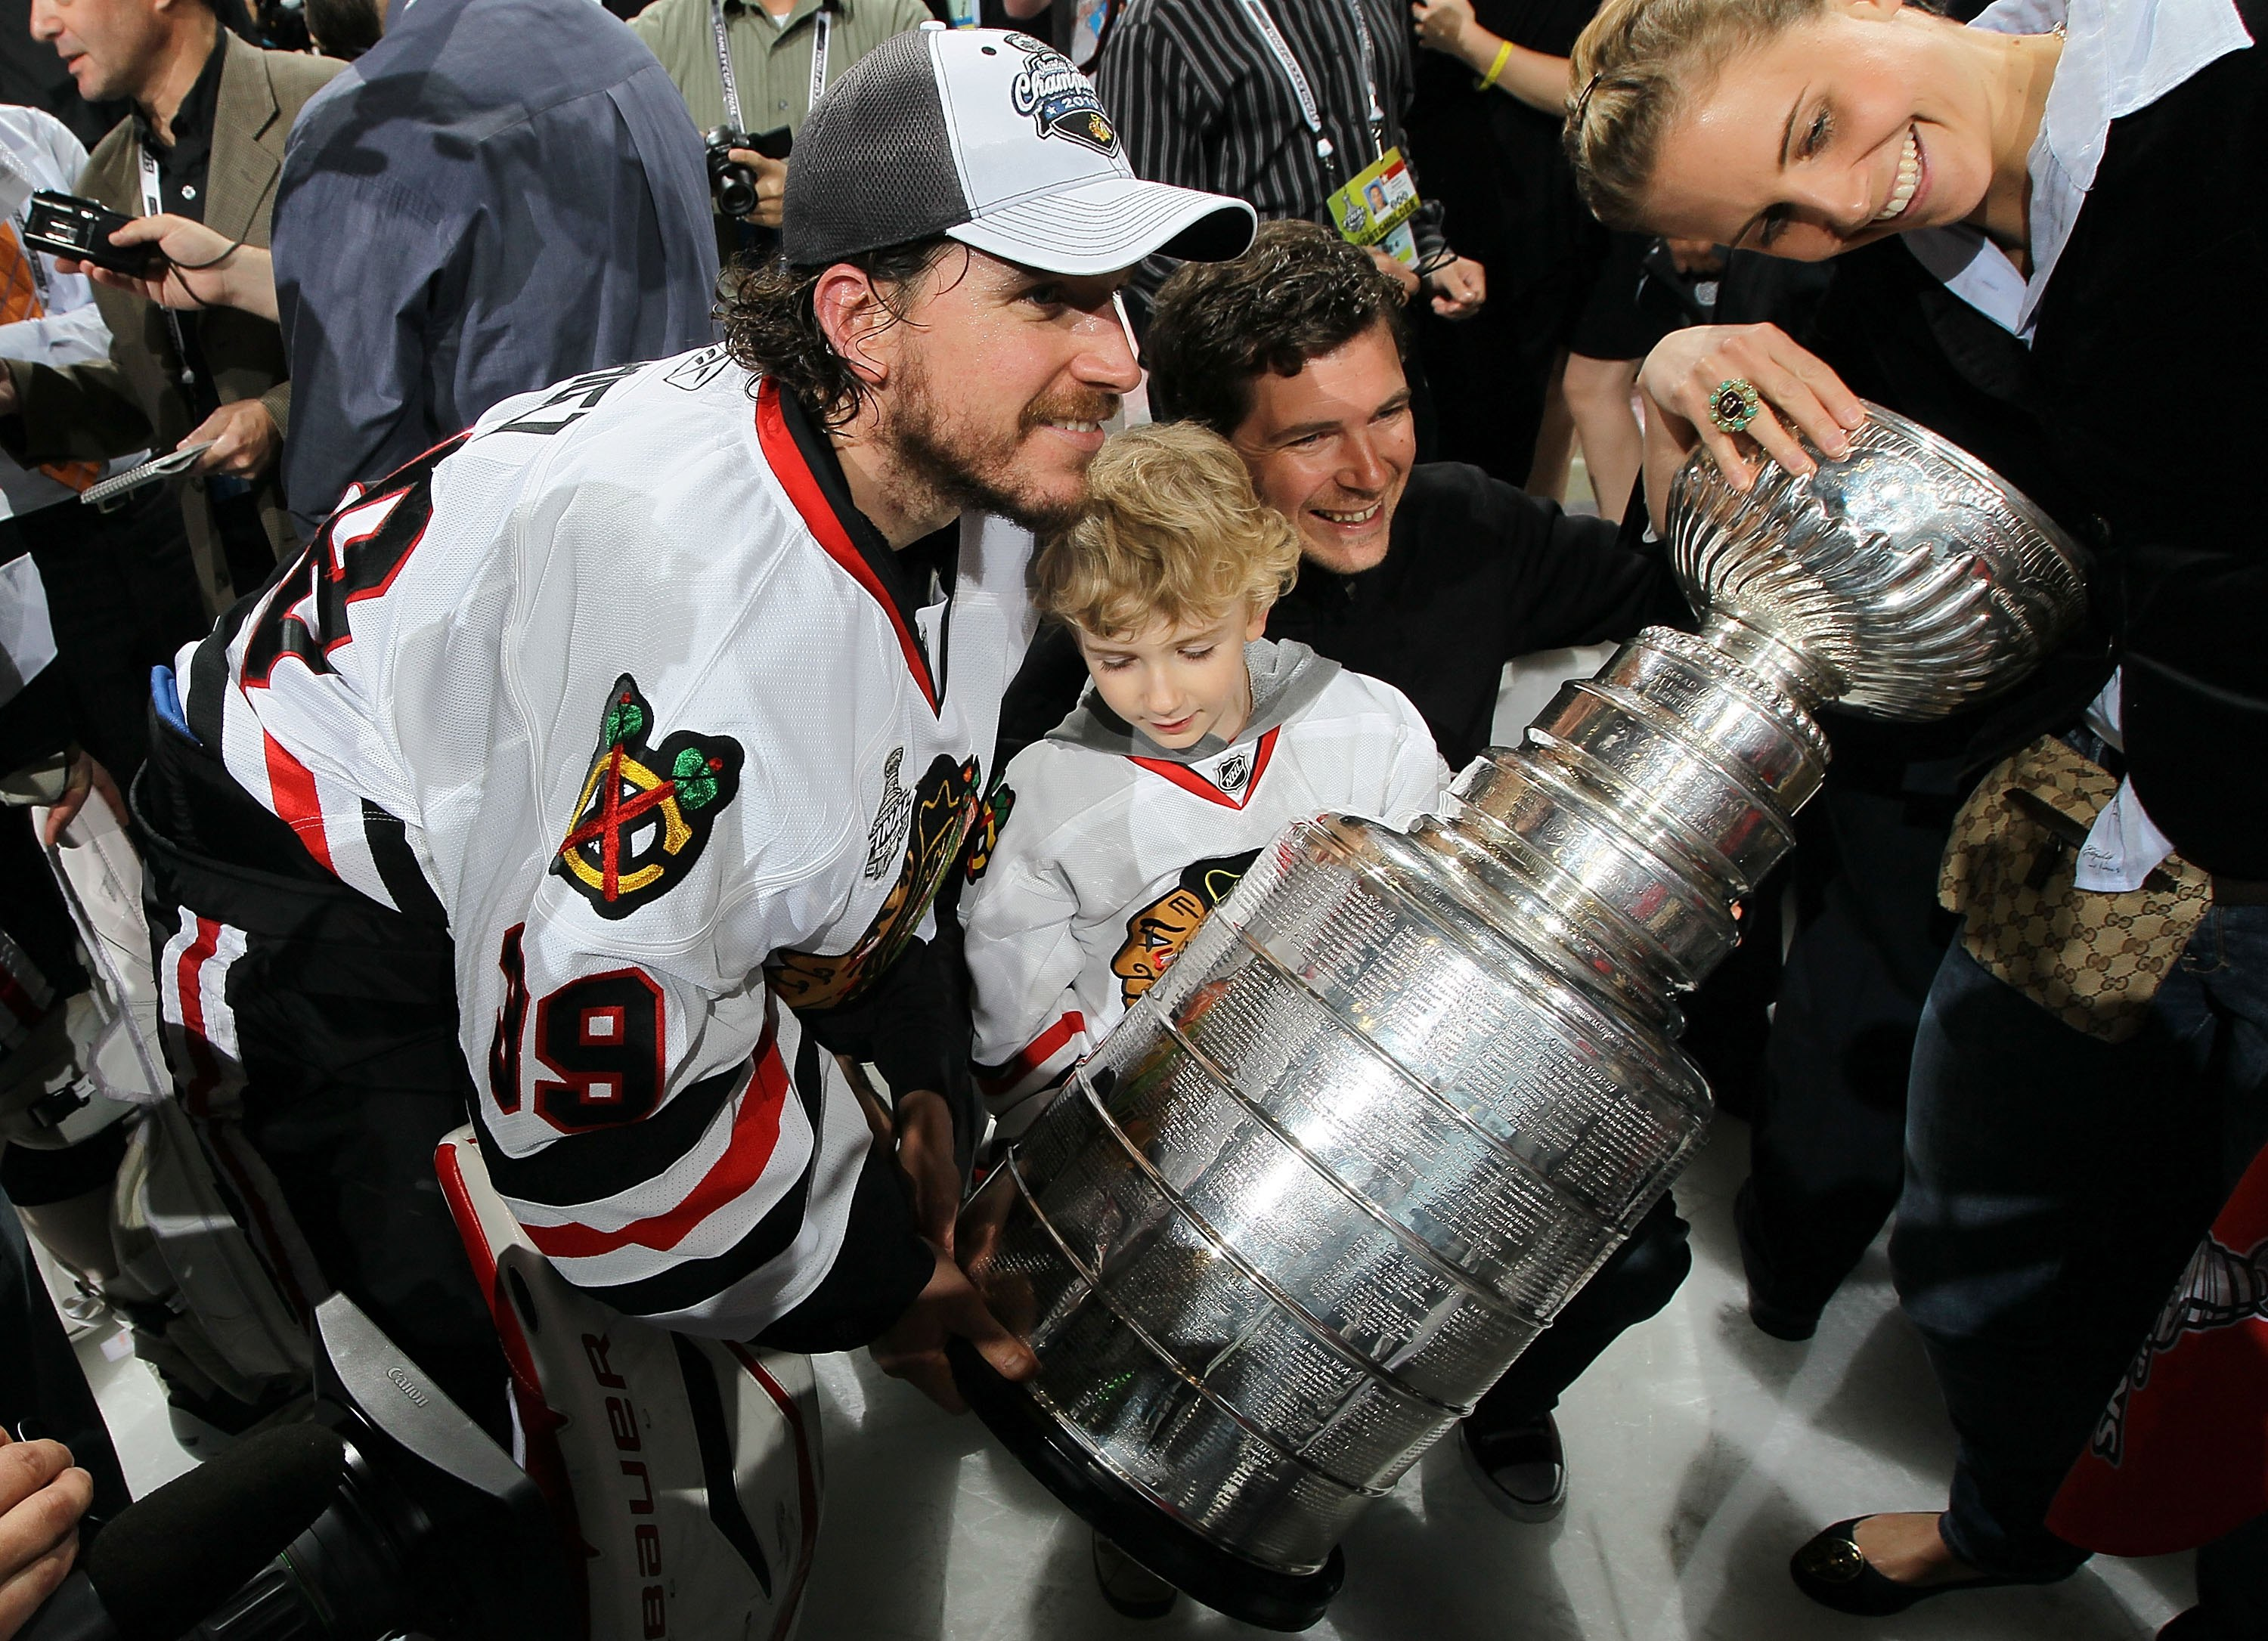 PHILADELPHIA - JUNE 09:  Cristobal Huet #39 of the Chicago Blackhawks hoists the Stanley Cup after teammate Patrick Kane scored the game-winning goal in overtime to defeat the Philadelphia Flyers 4-3 and win the Stanley Cup in Game Six of the 2010 NHL Sta